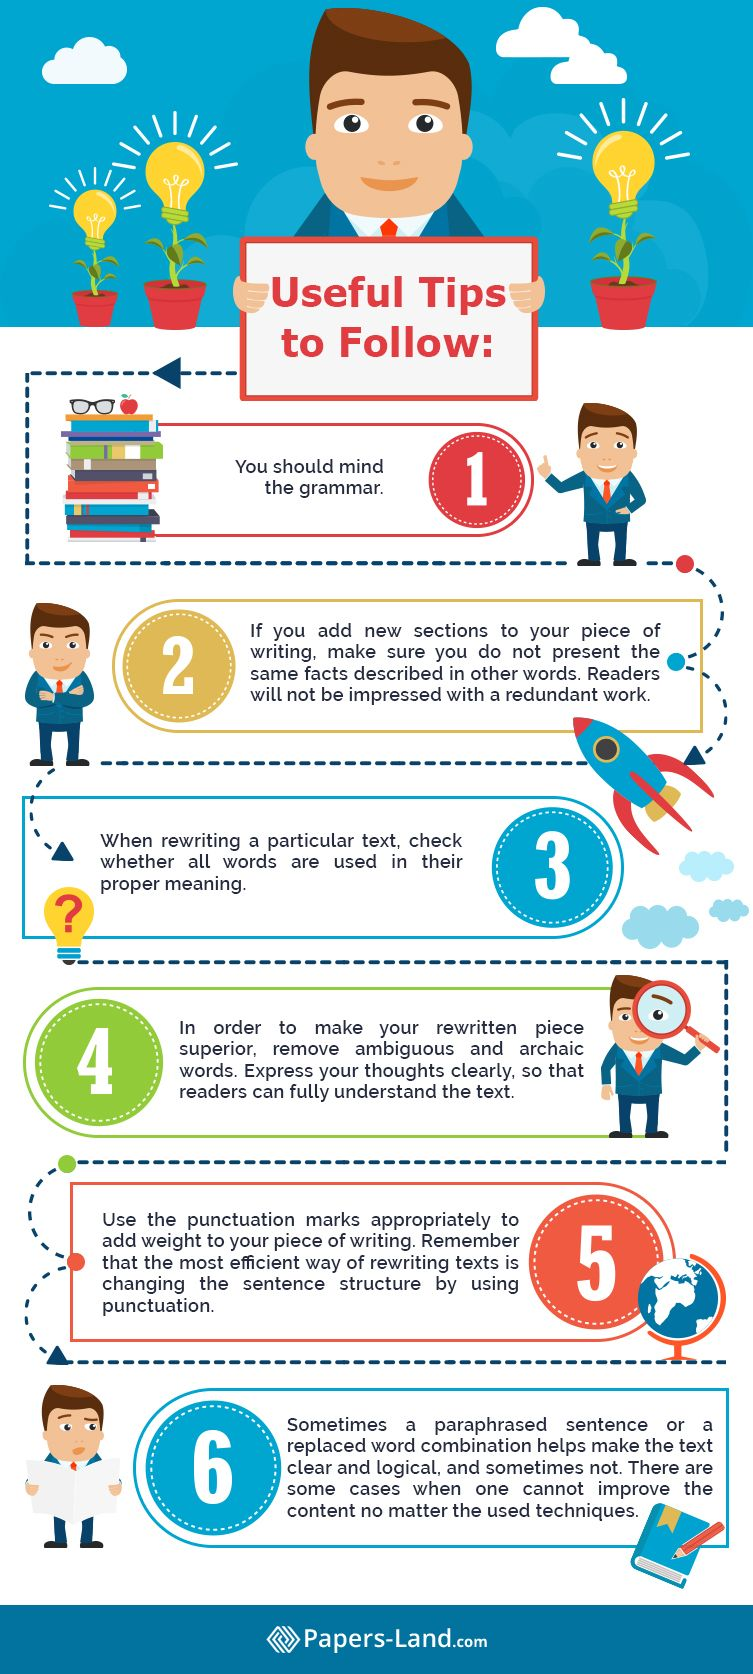 How To Paraphrase In A Paper Land Com Infographic Marketing The Following Statement Do You Agree Or Disagree